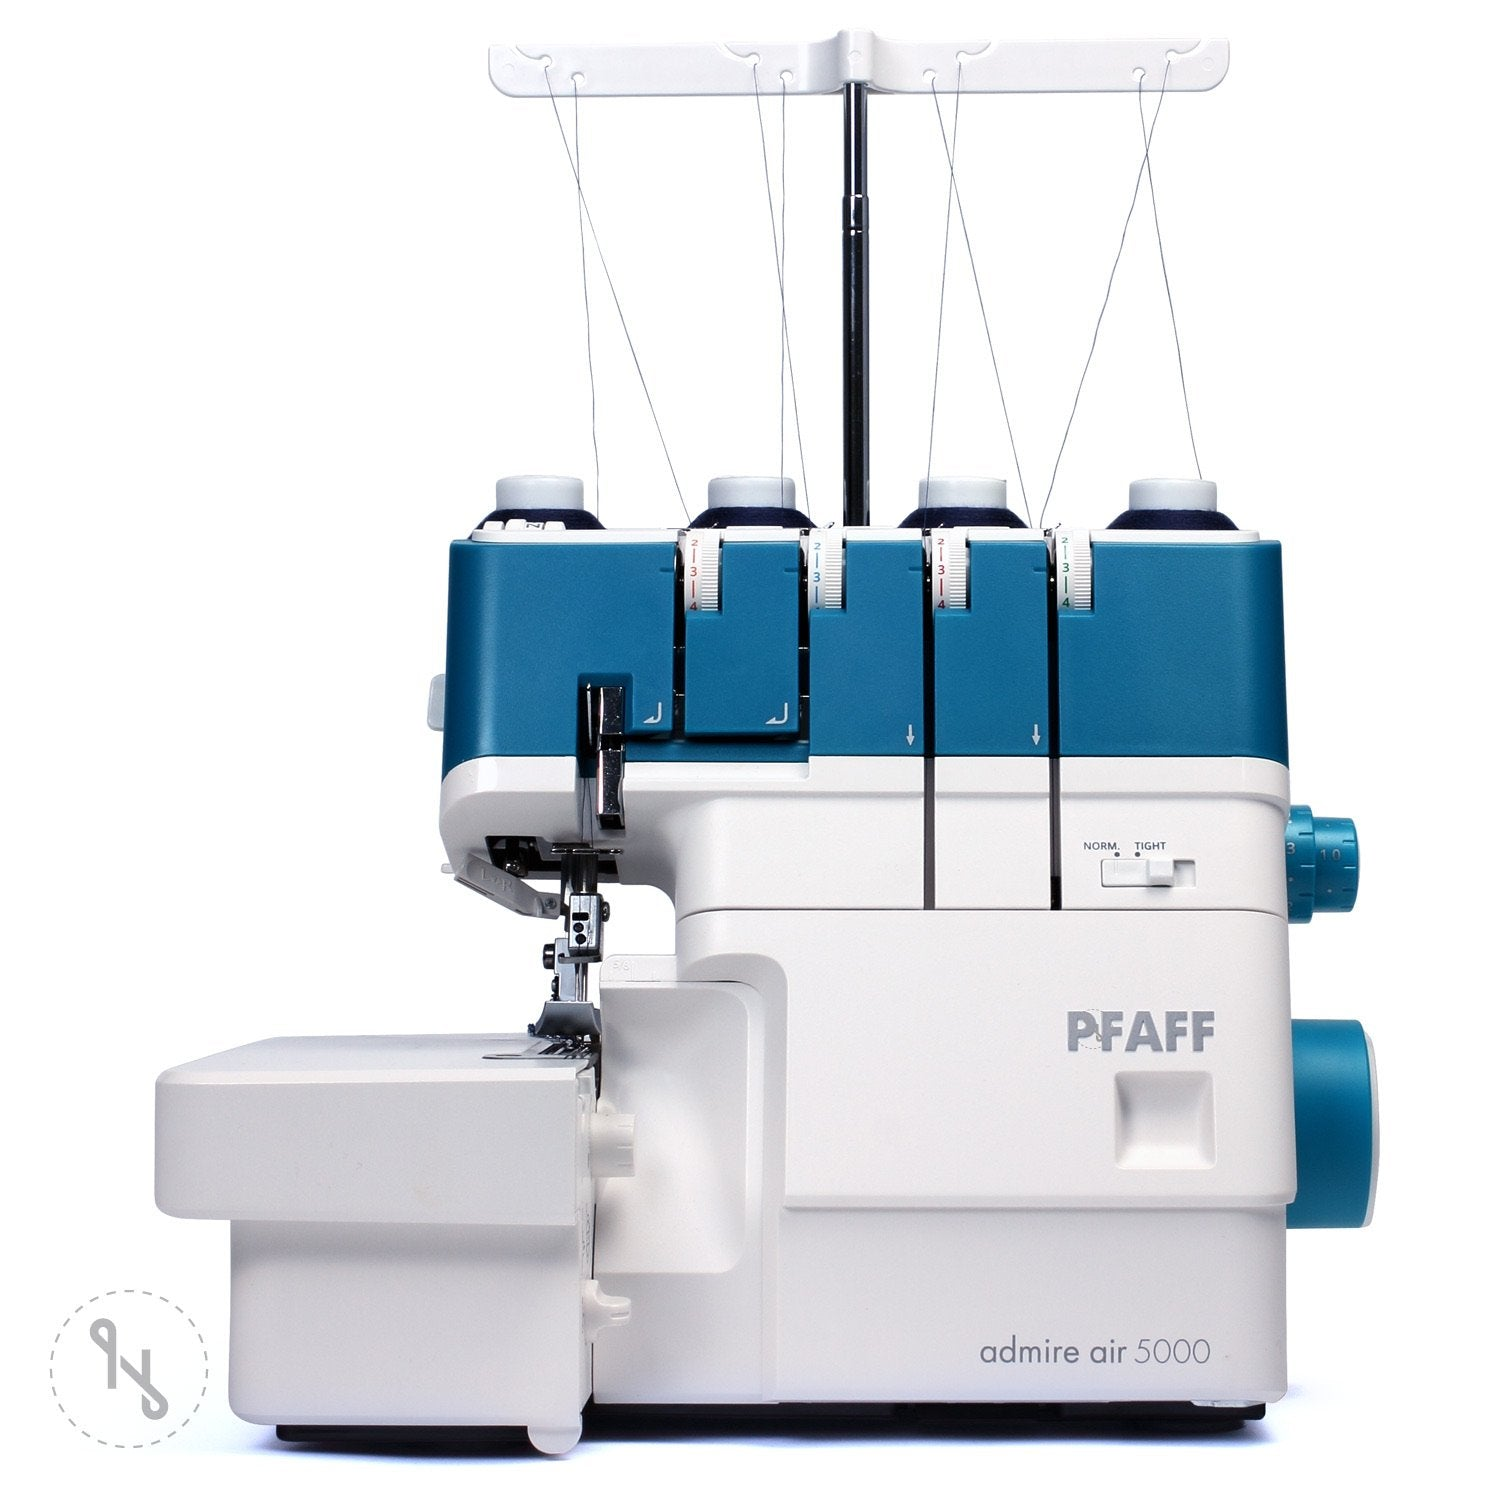 Pfaff admire air 5000 Overlocker - NEW